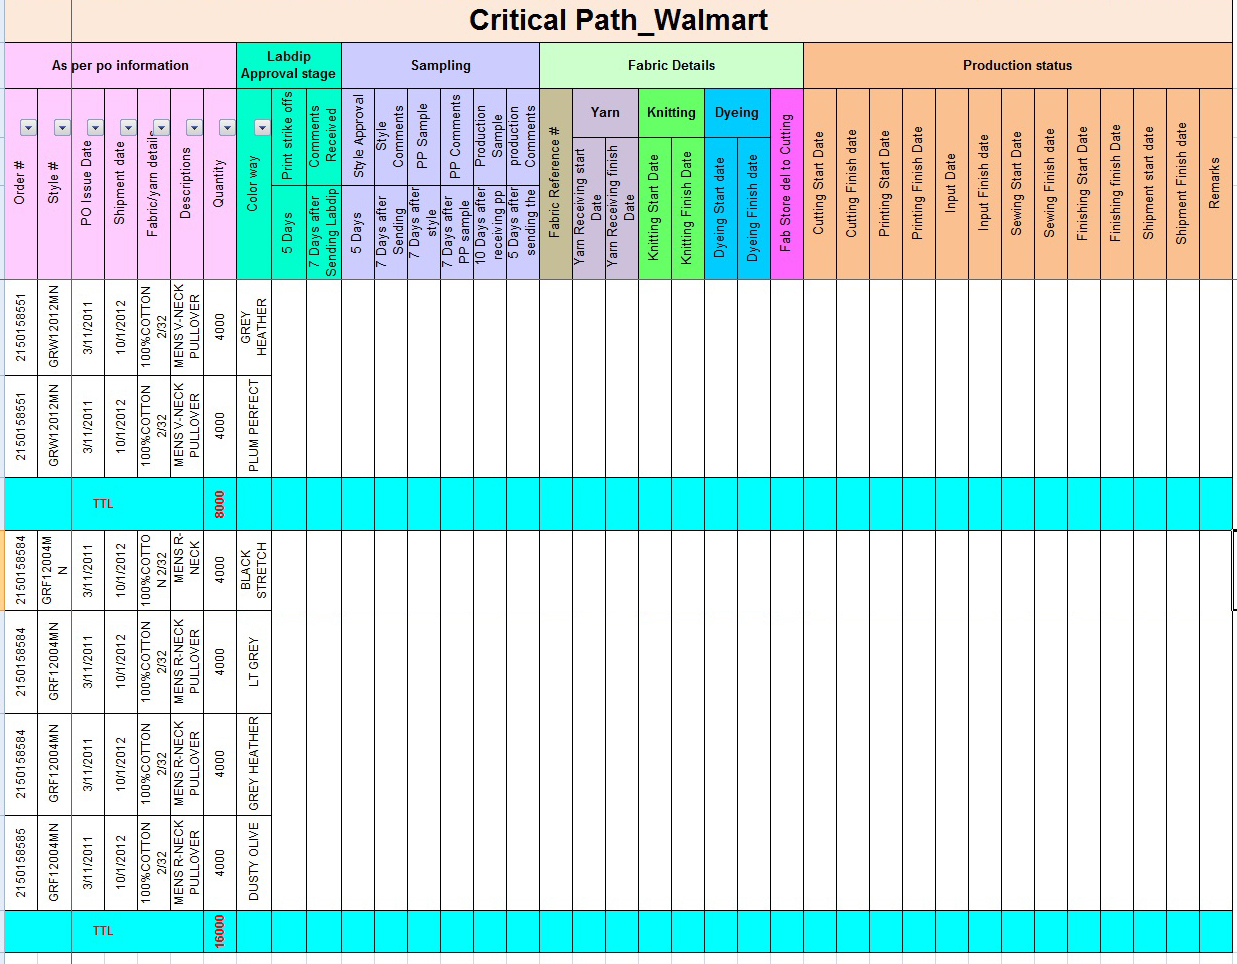 Apparel Merchandising World: Critical Pathtna with Time And Action Calendar